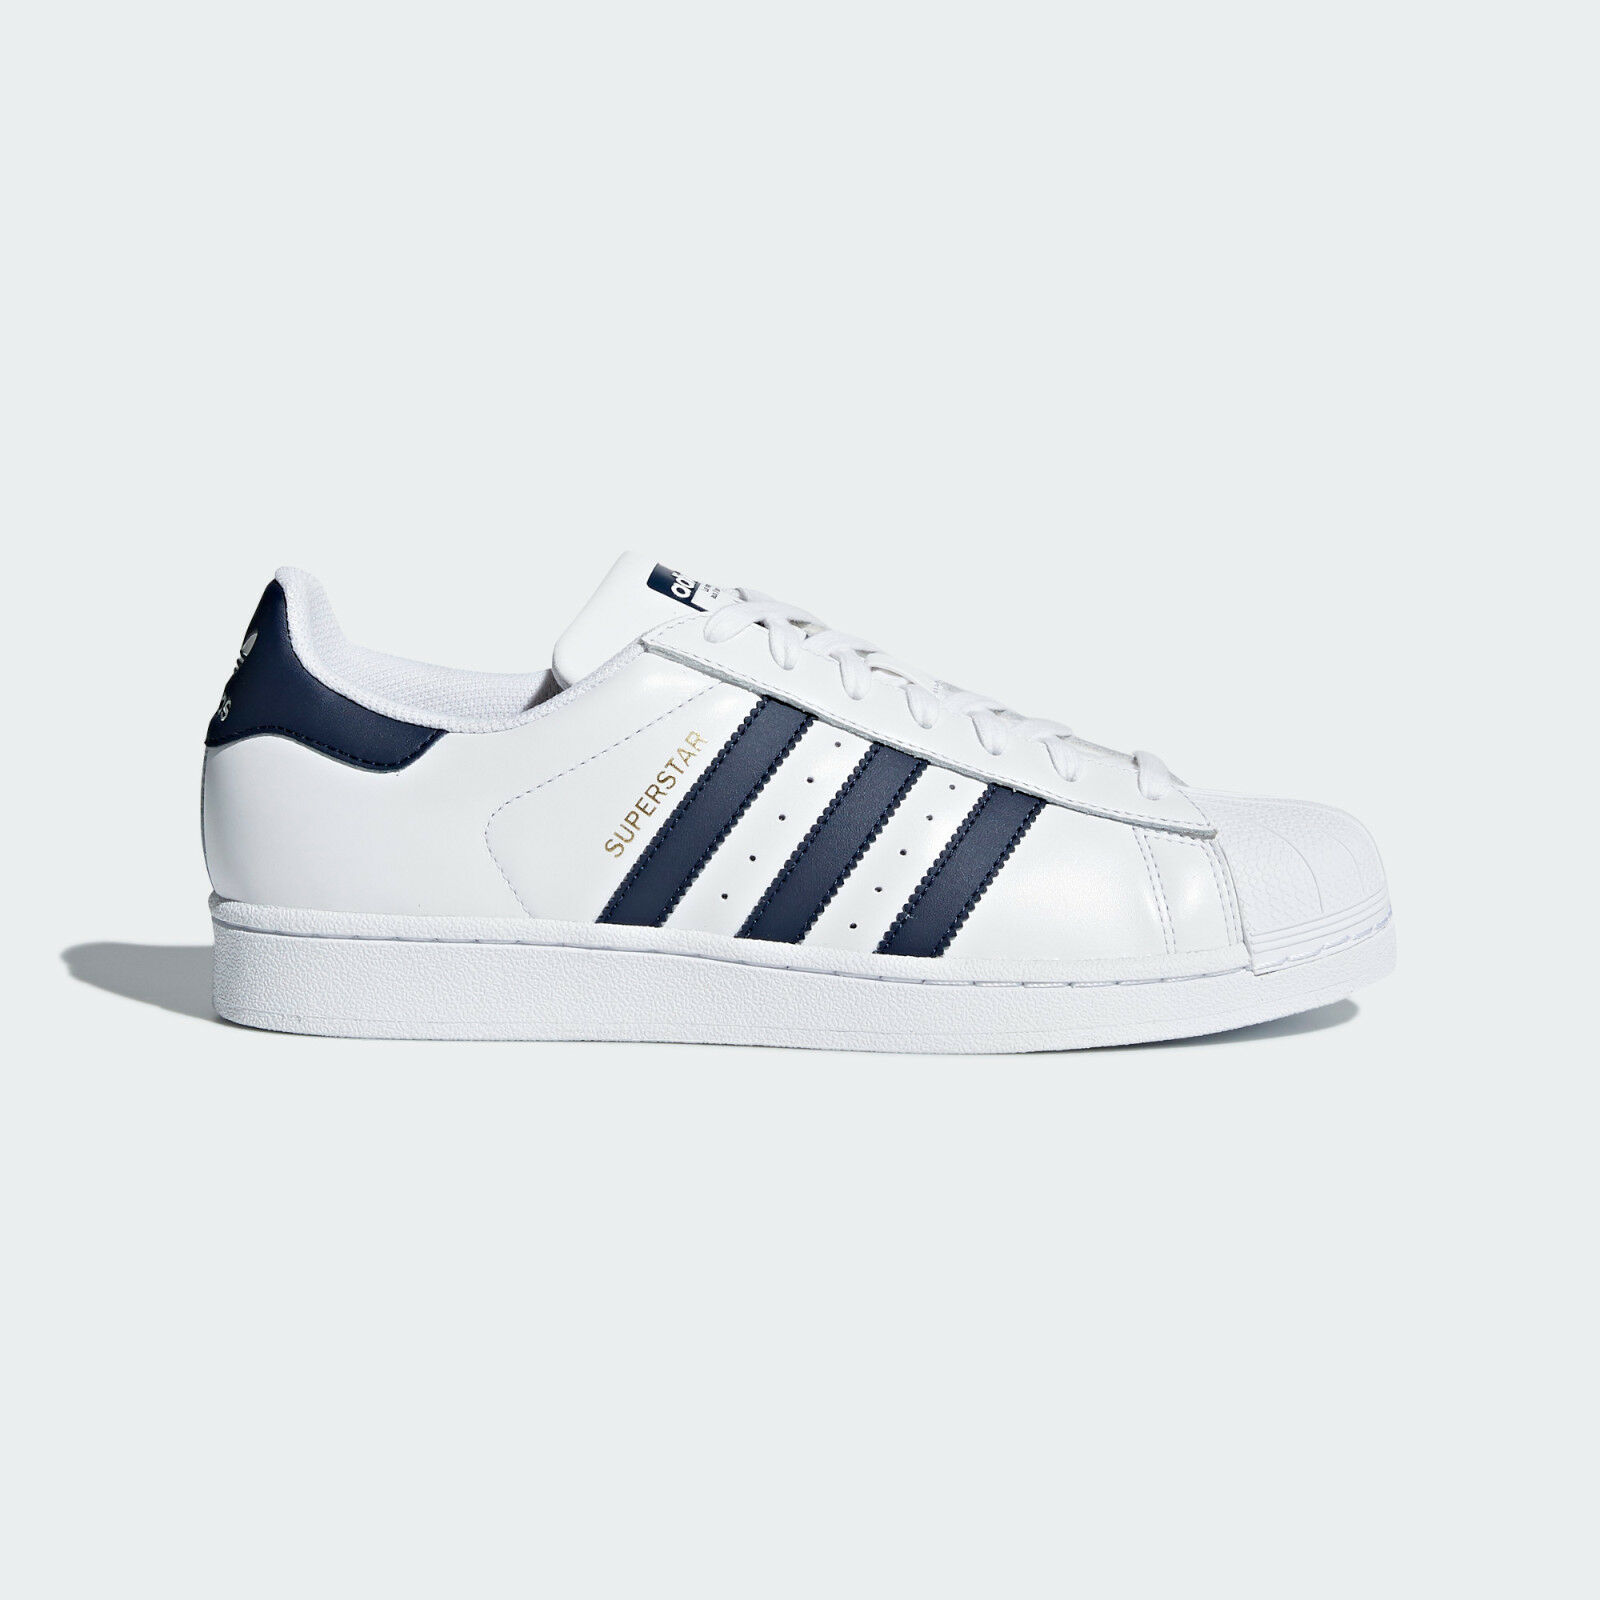 0082efeaa25 adidas Originals Superstar White Collegiate Navy Men Shoes SNEAKERS ...